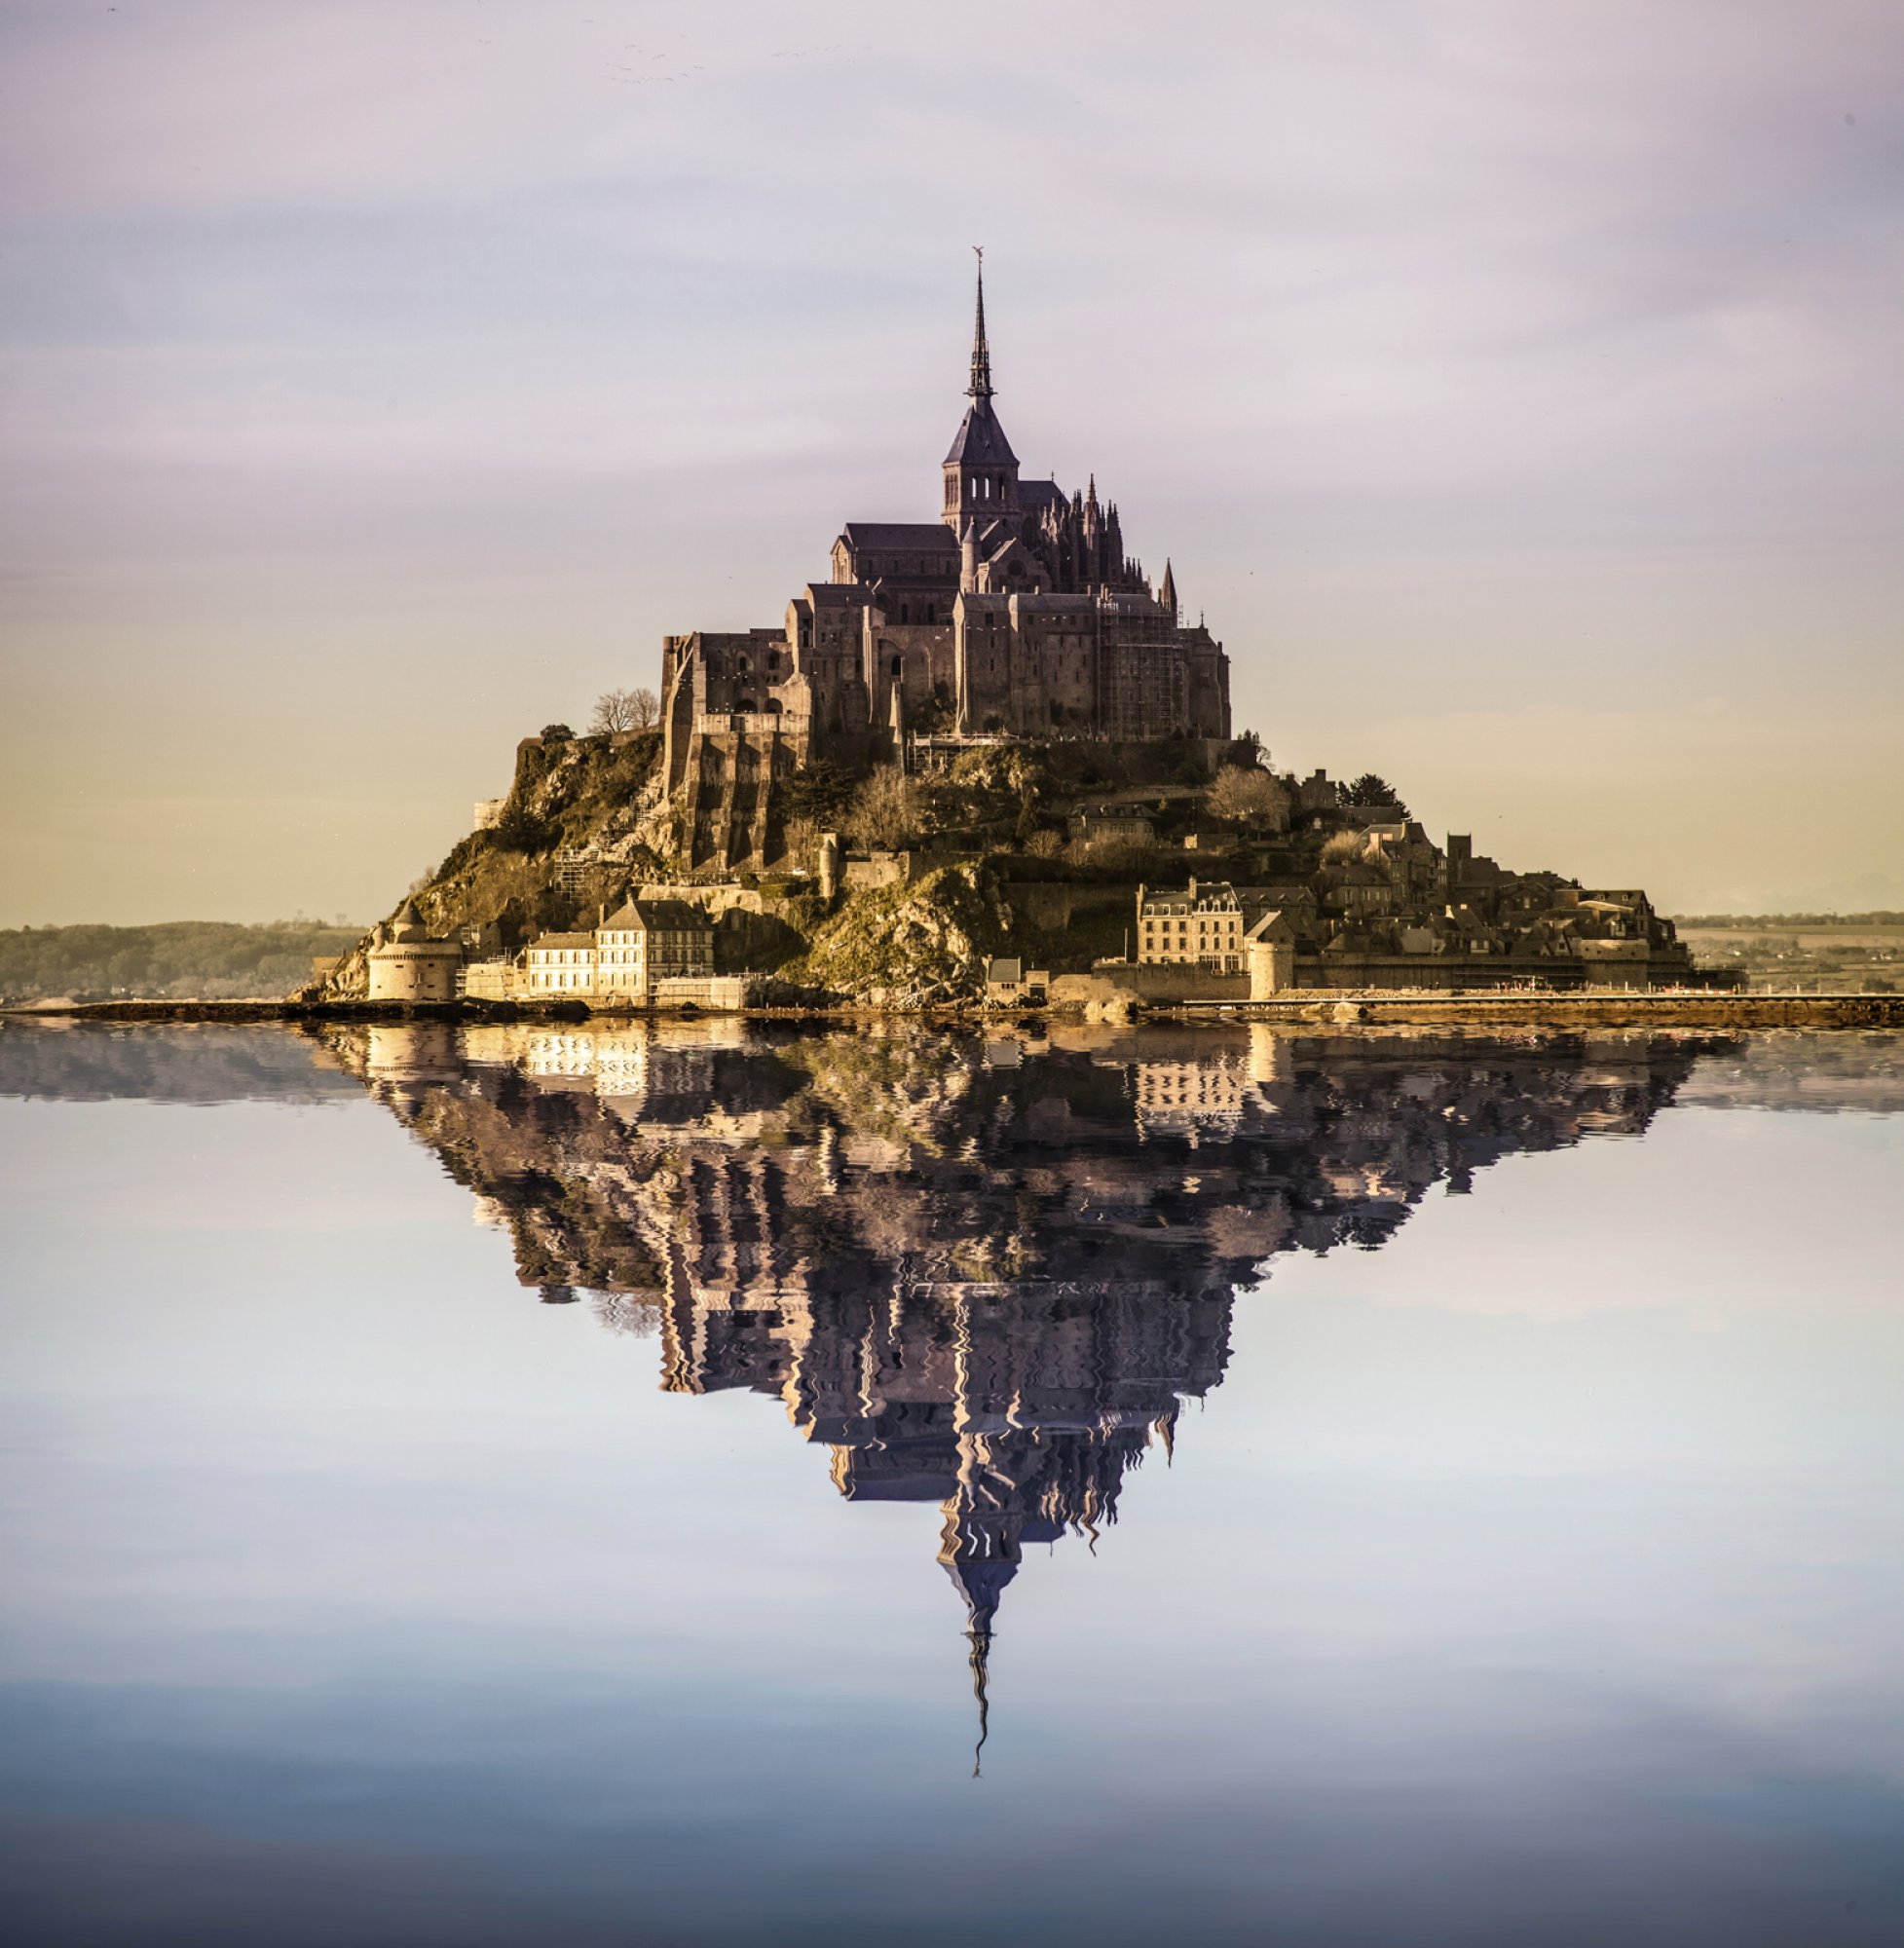 https://bubo.sk/uploads/galleries/5049/0hlavna-mont-saint-michel-with-photoshopped-reflection.jpg